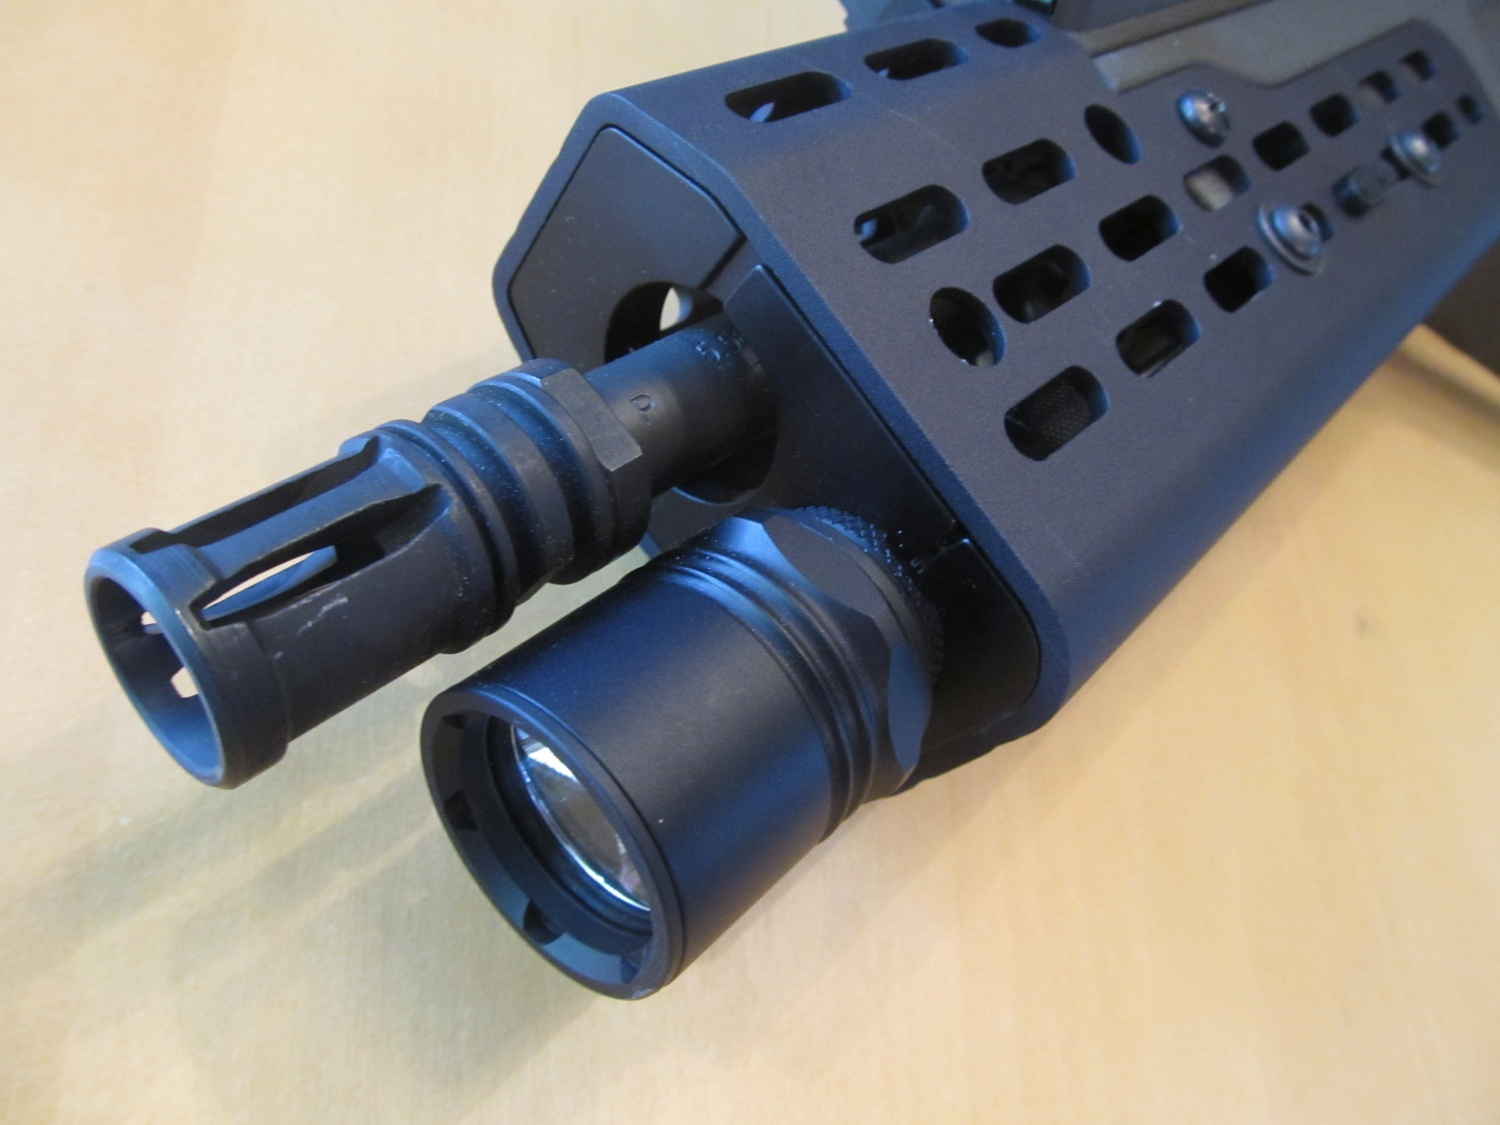 The Archlight XTL forend on an 18 inch Tavor rifle. This product has a number of unique features such as monolithic construction, and the ability to place a light ring at multiple spots within the forend.